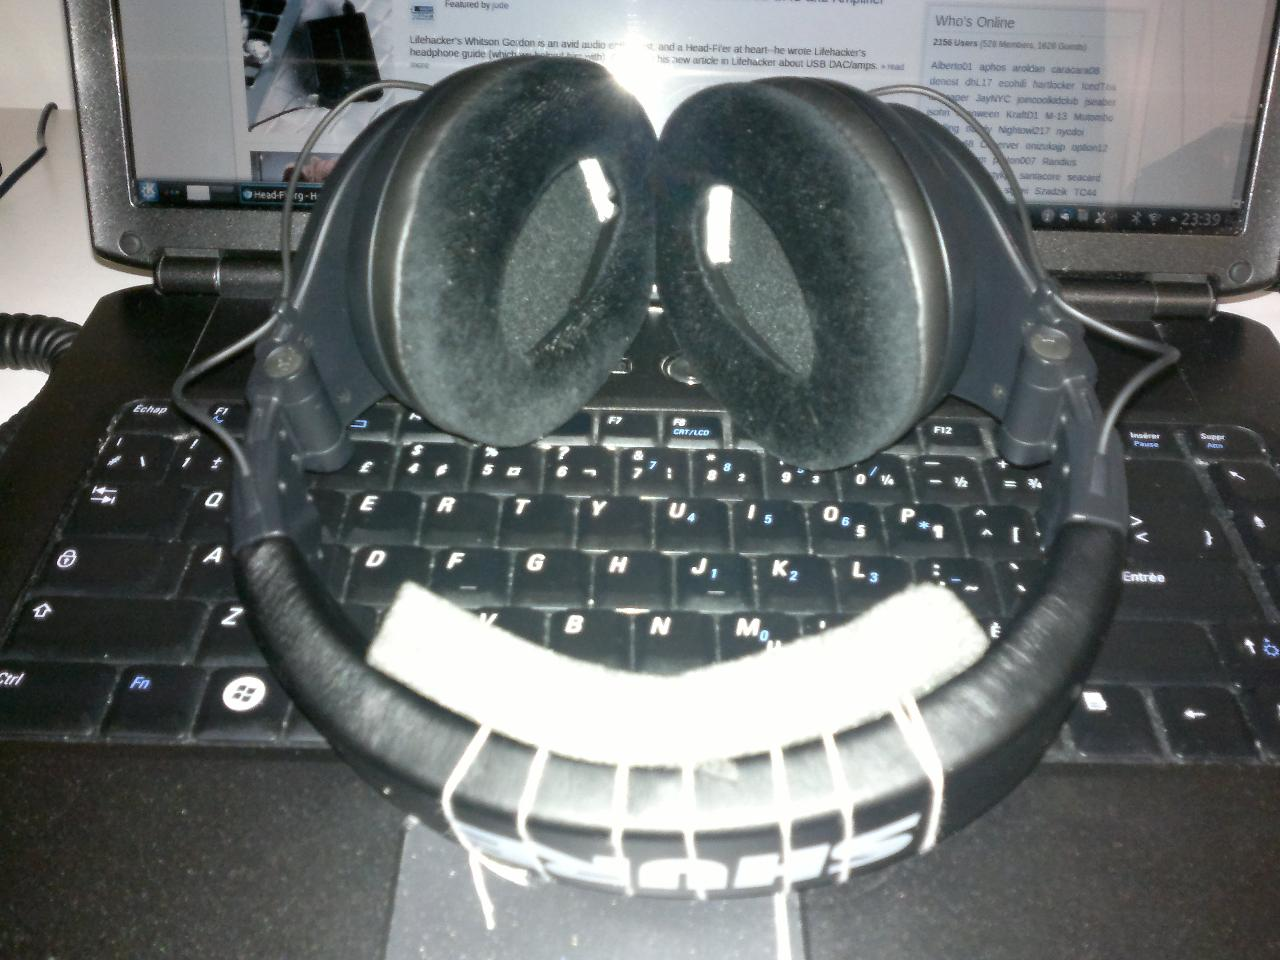 My pair of Shure SRH440 with the SRH940's velour pads. This picture shows the foam insert...